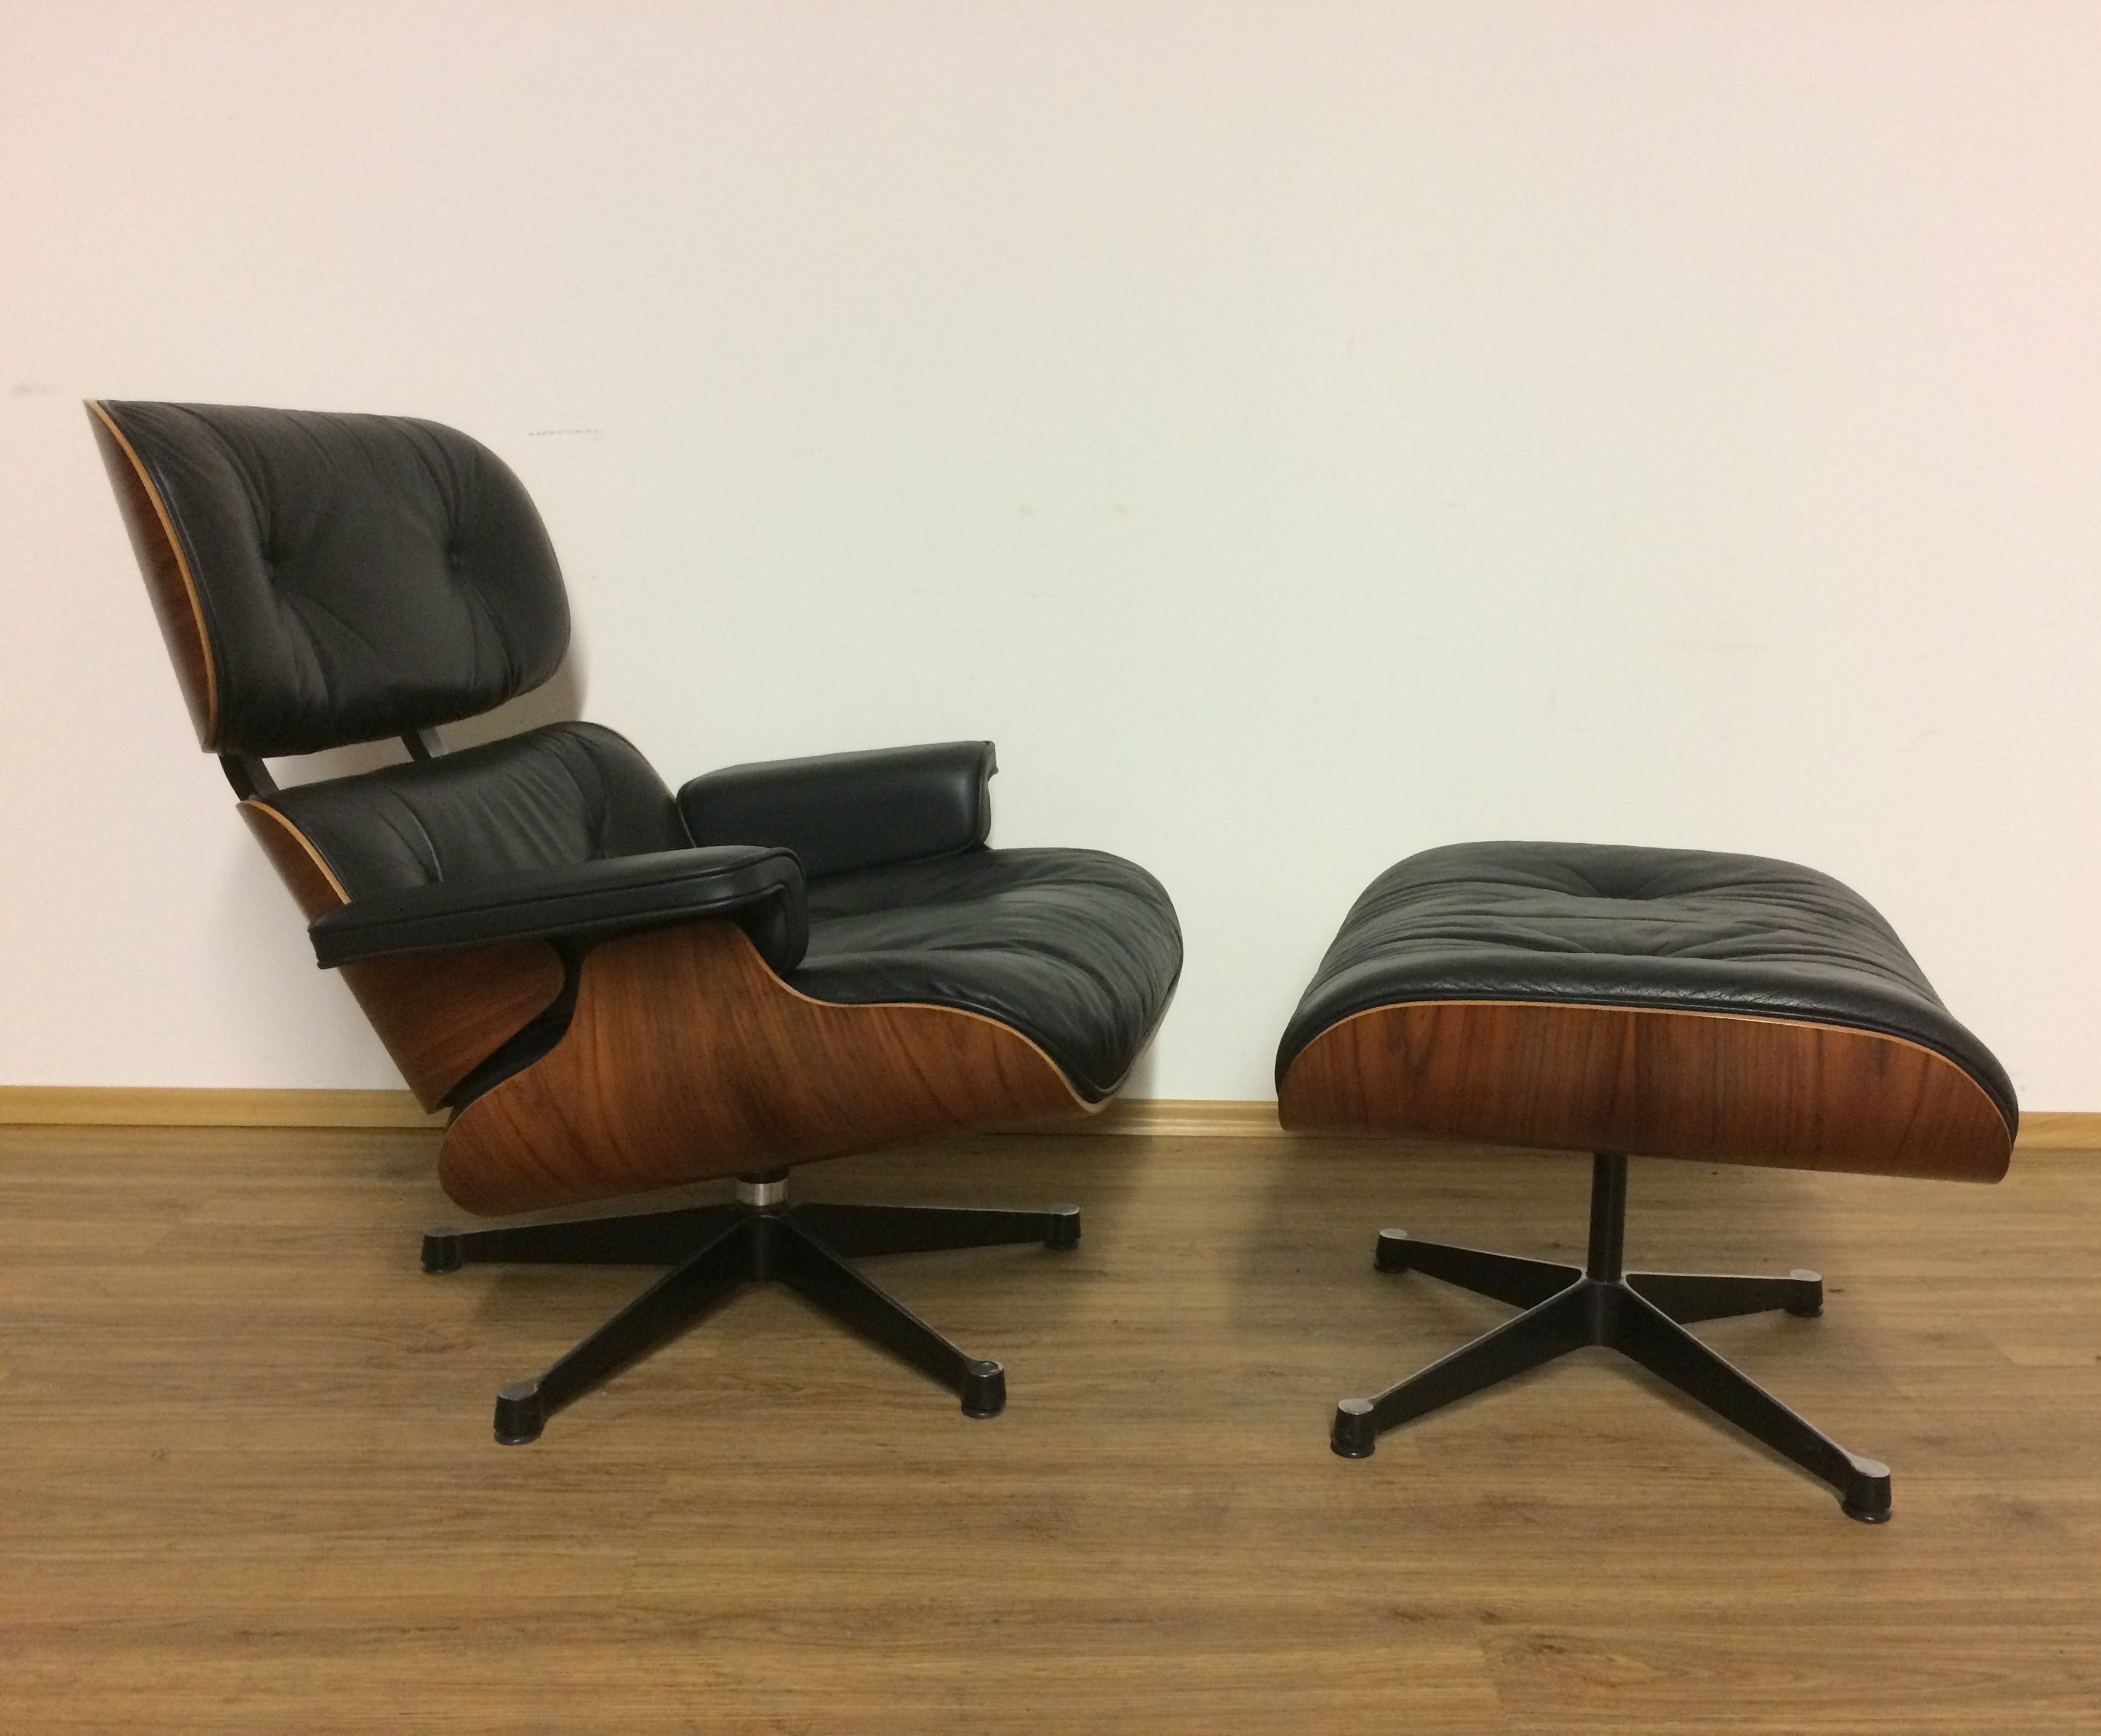 Charles Eames Lounge Chair Charles Eames Lounge Chair 1980s 74093